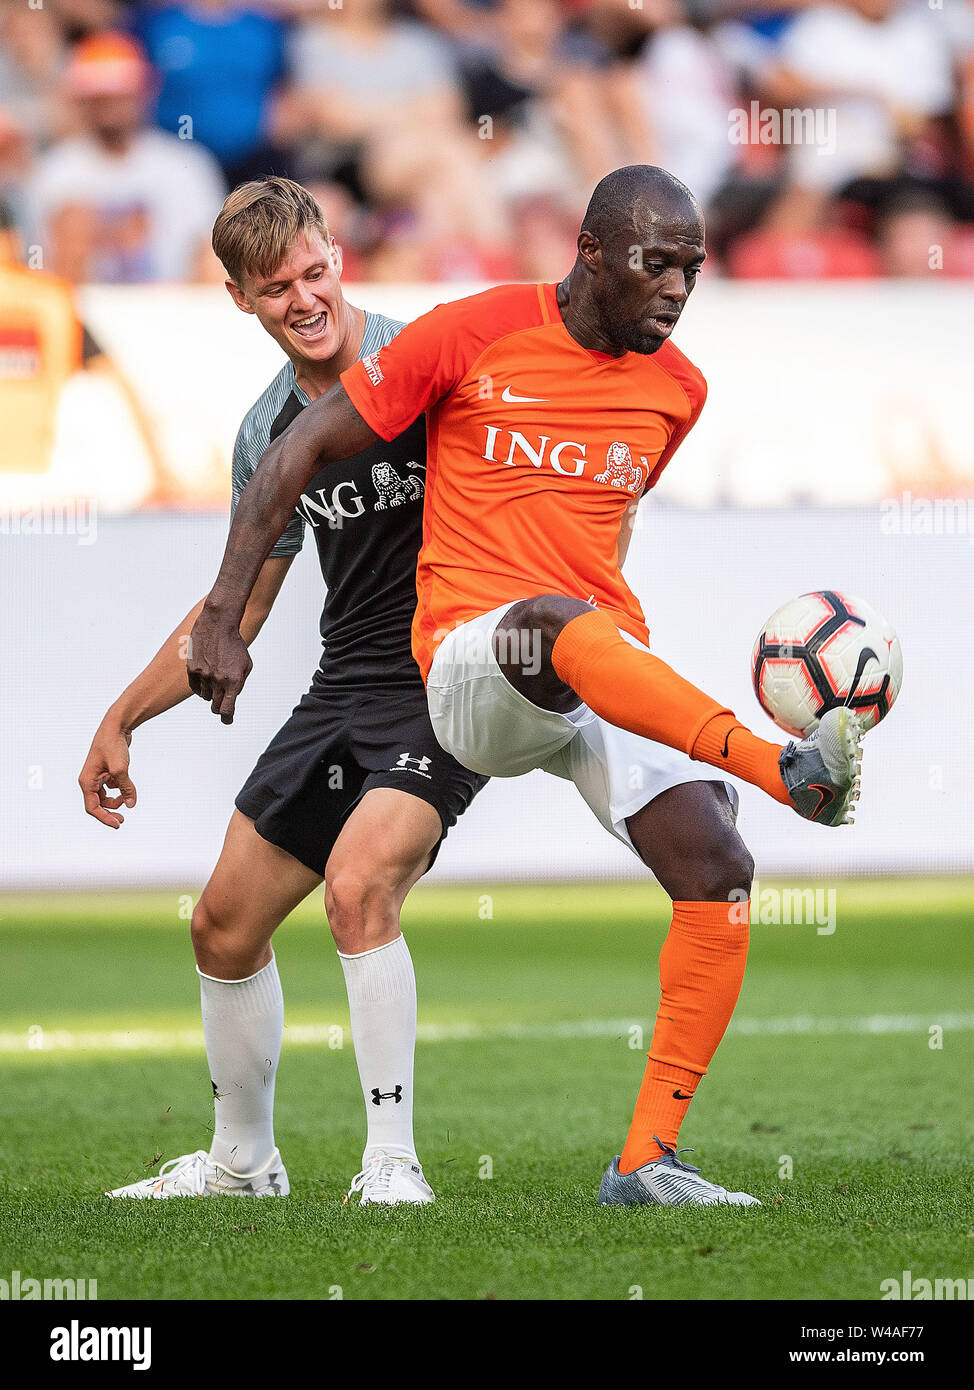 Leverkusen, Germany. 21st July, 2019. Soccer: Benefit soccer game 'Champions for Charity' in the BayArena. Racing driver Mick Schumacher (l) and former footballer Hans Sarpei fight for the ball. Credit: Marius Becker/dpa/Alamy Live News - Stock Image